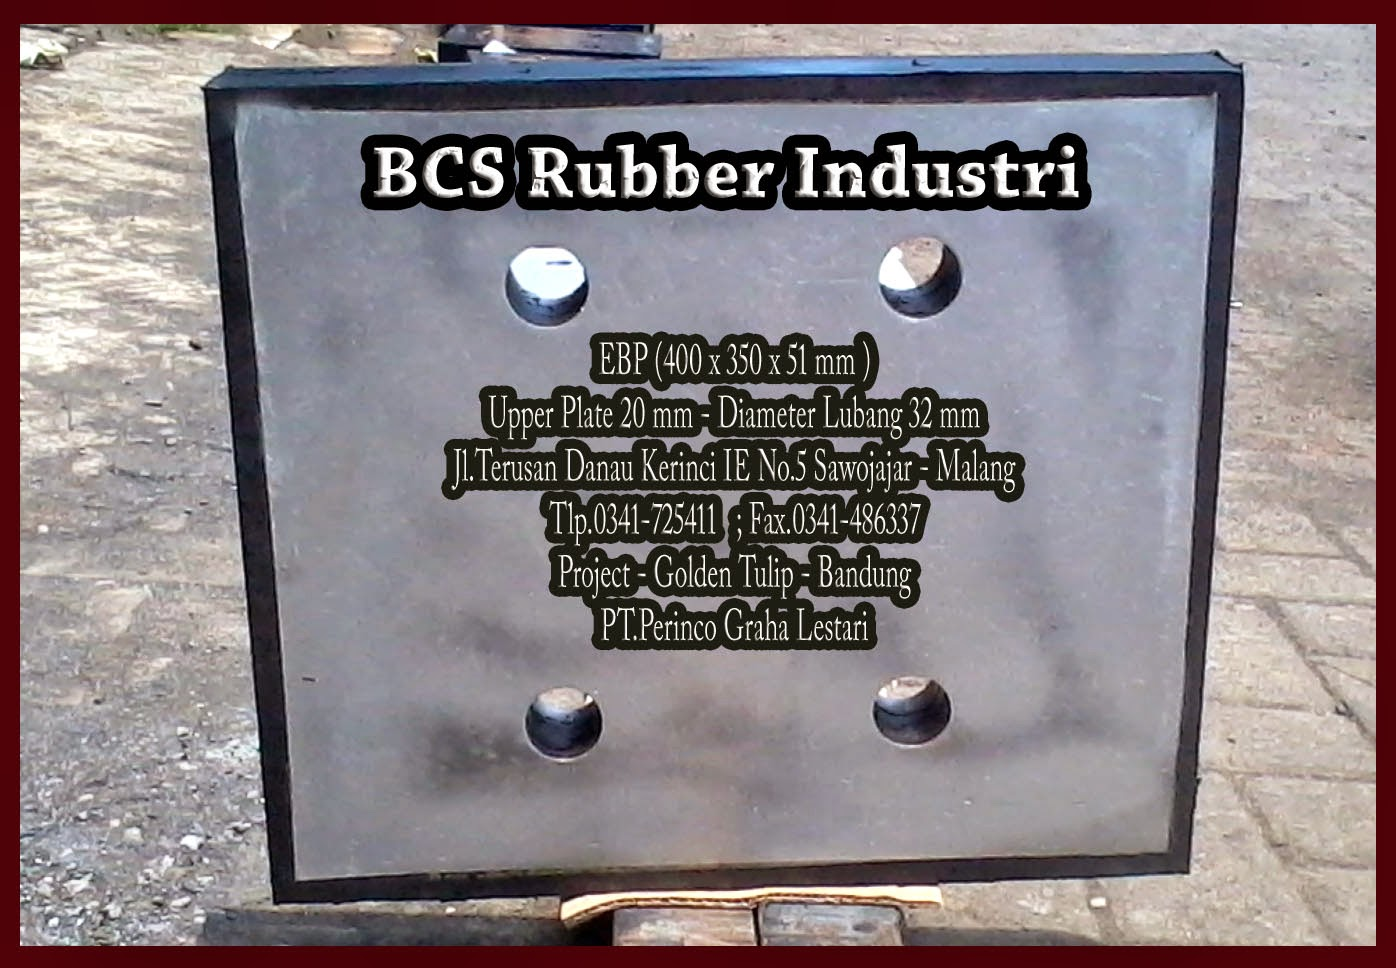 Elastomer Bearing Pad BCS Rubber #Special and Competitive Price #Good Quality ,bantalan Jembatan